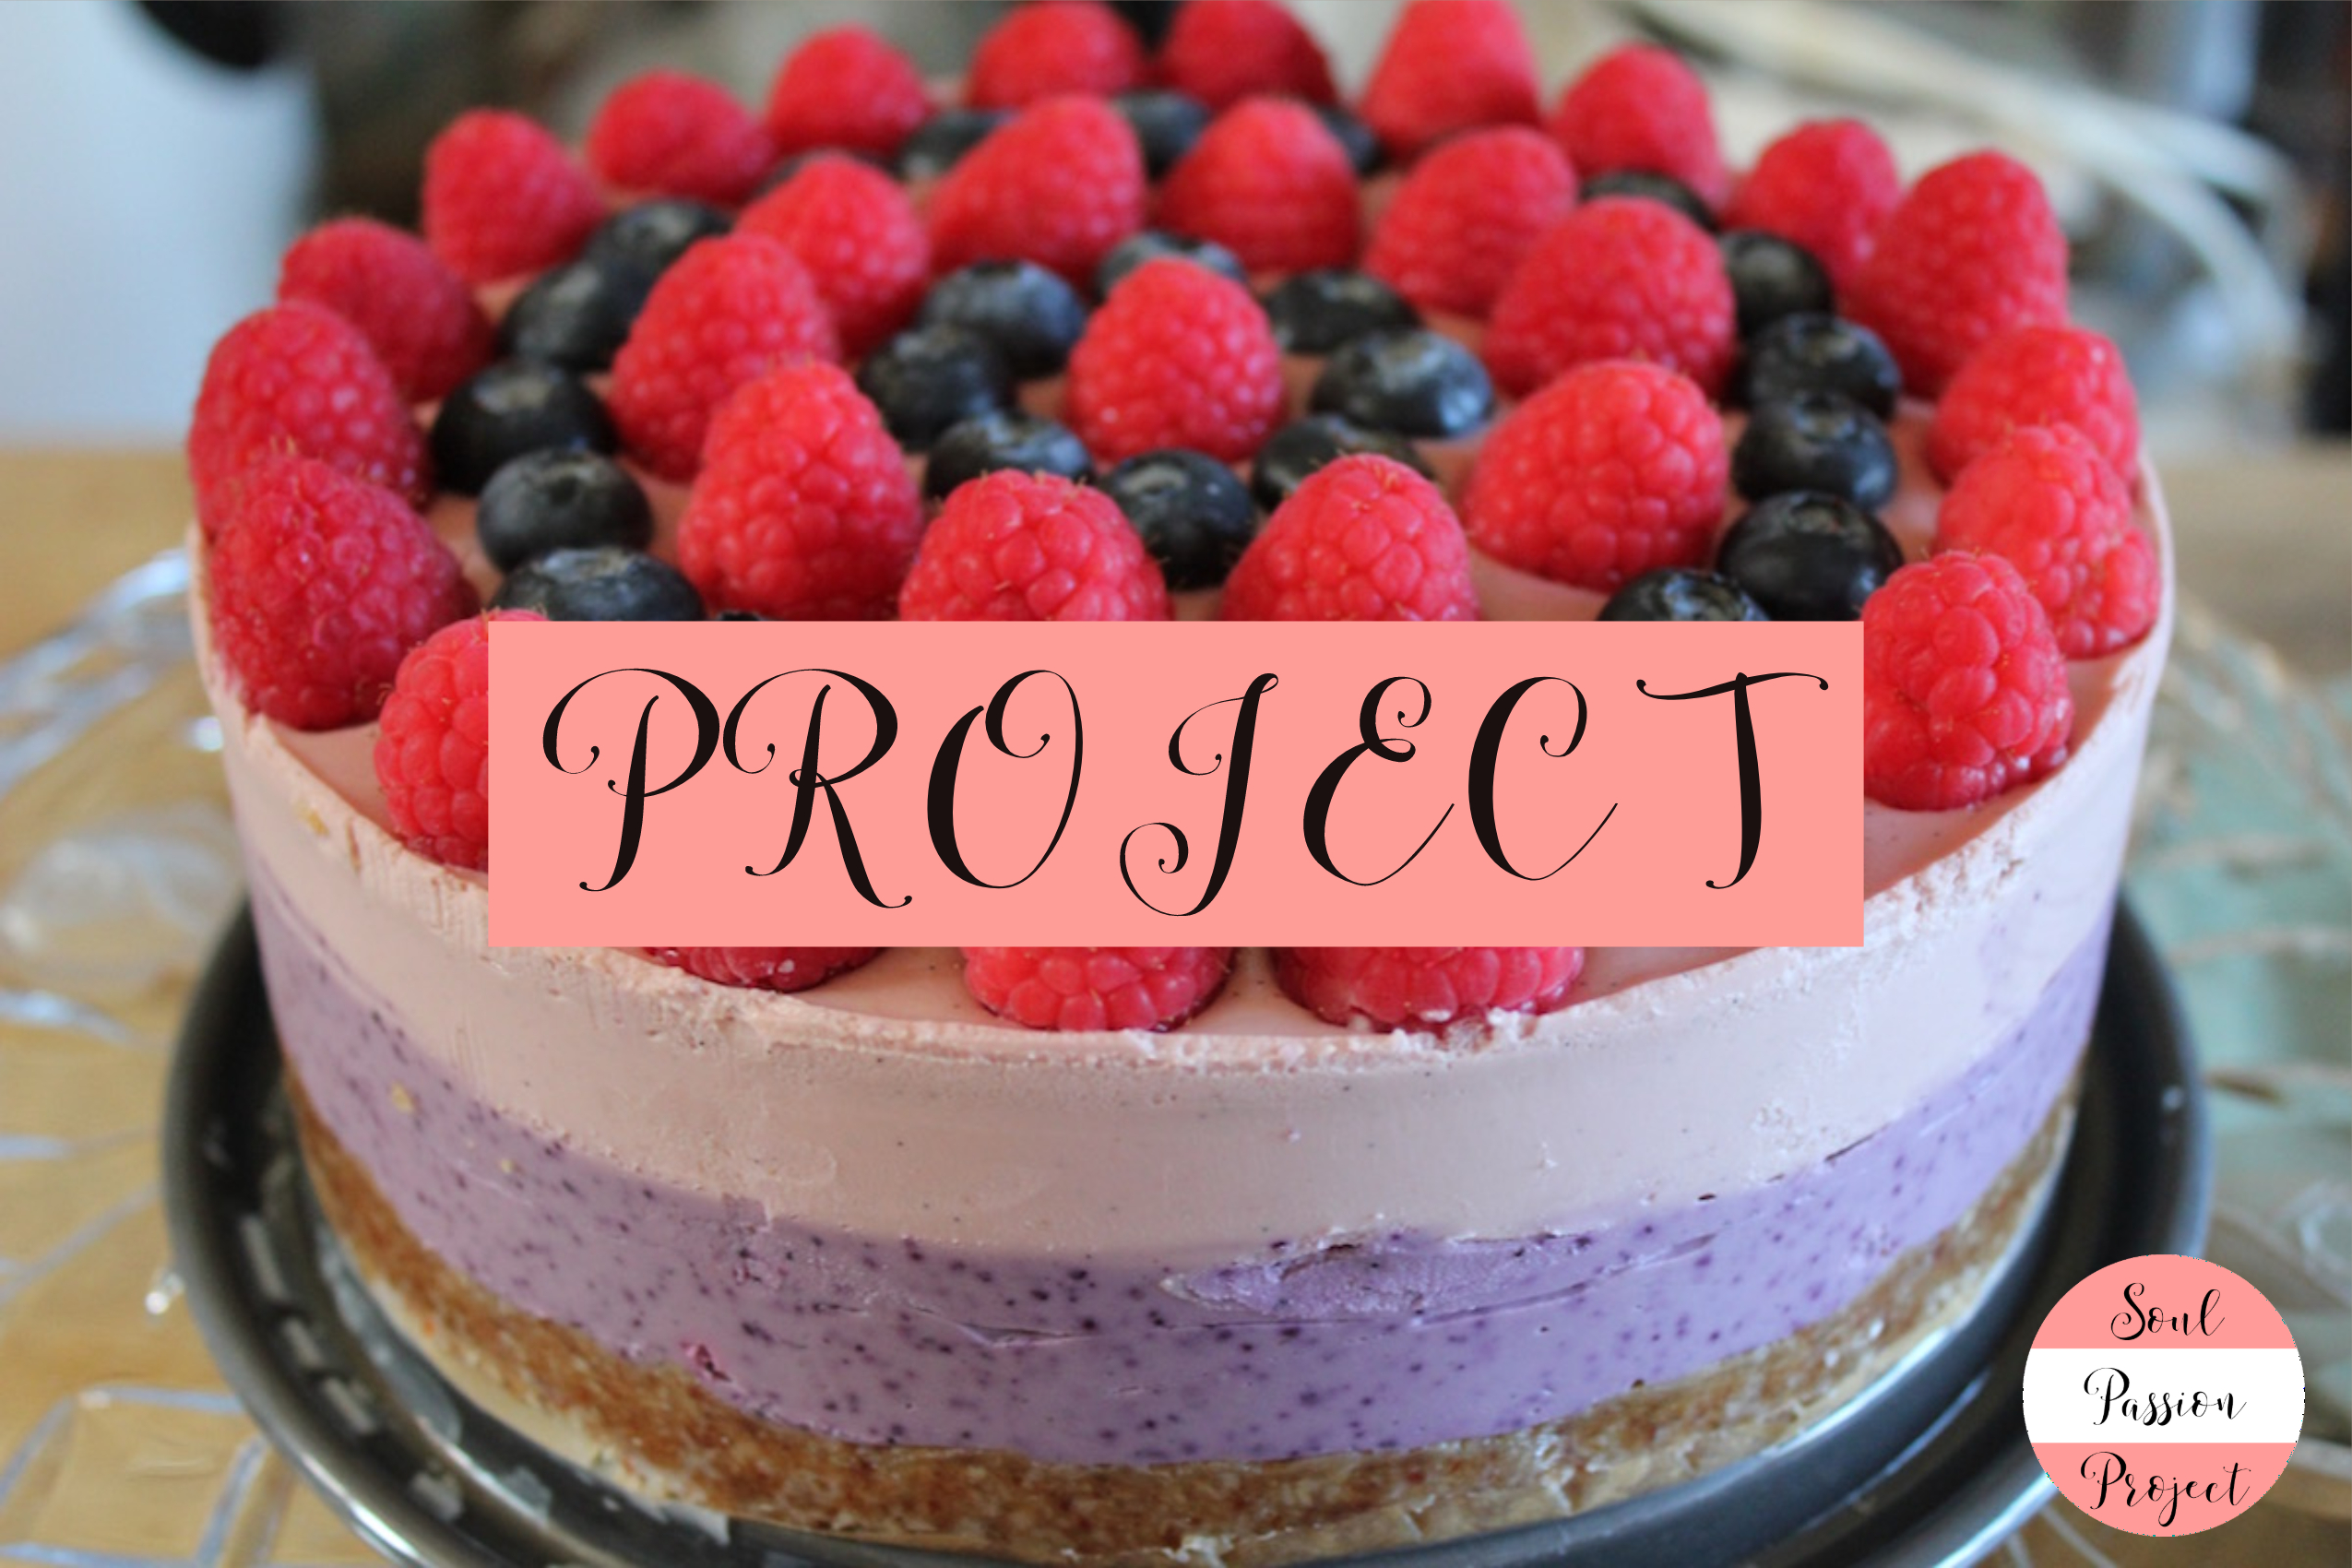 PROJECT | Be Creative!